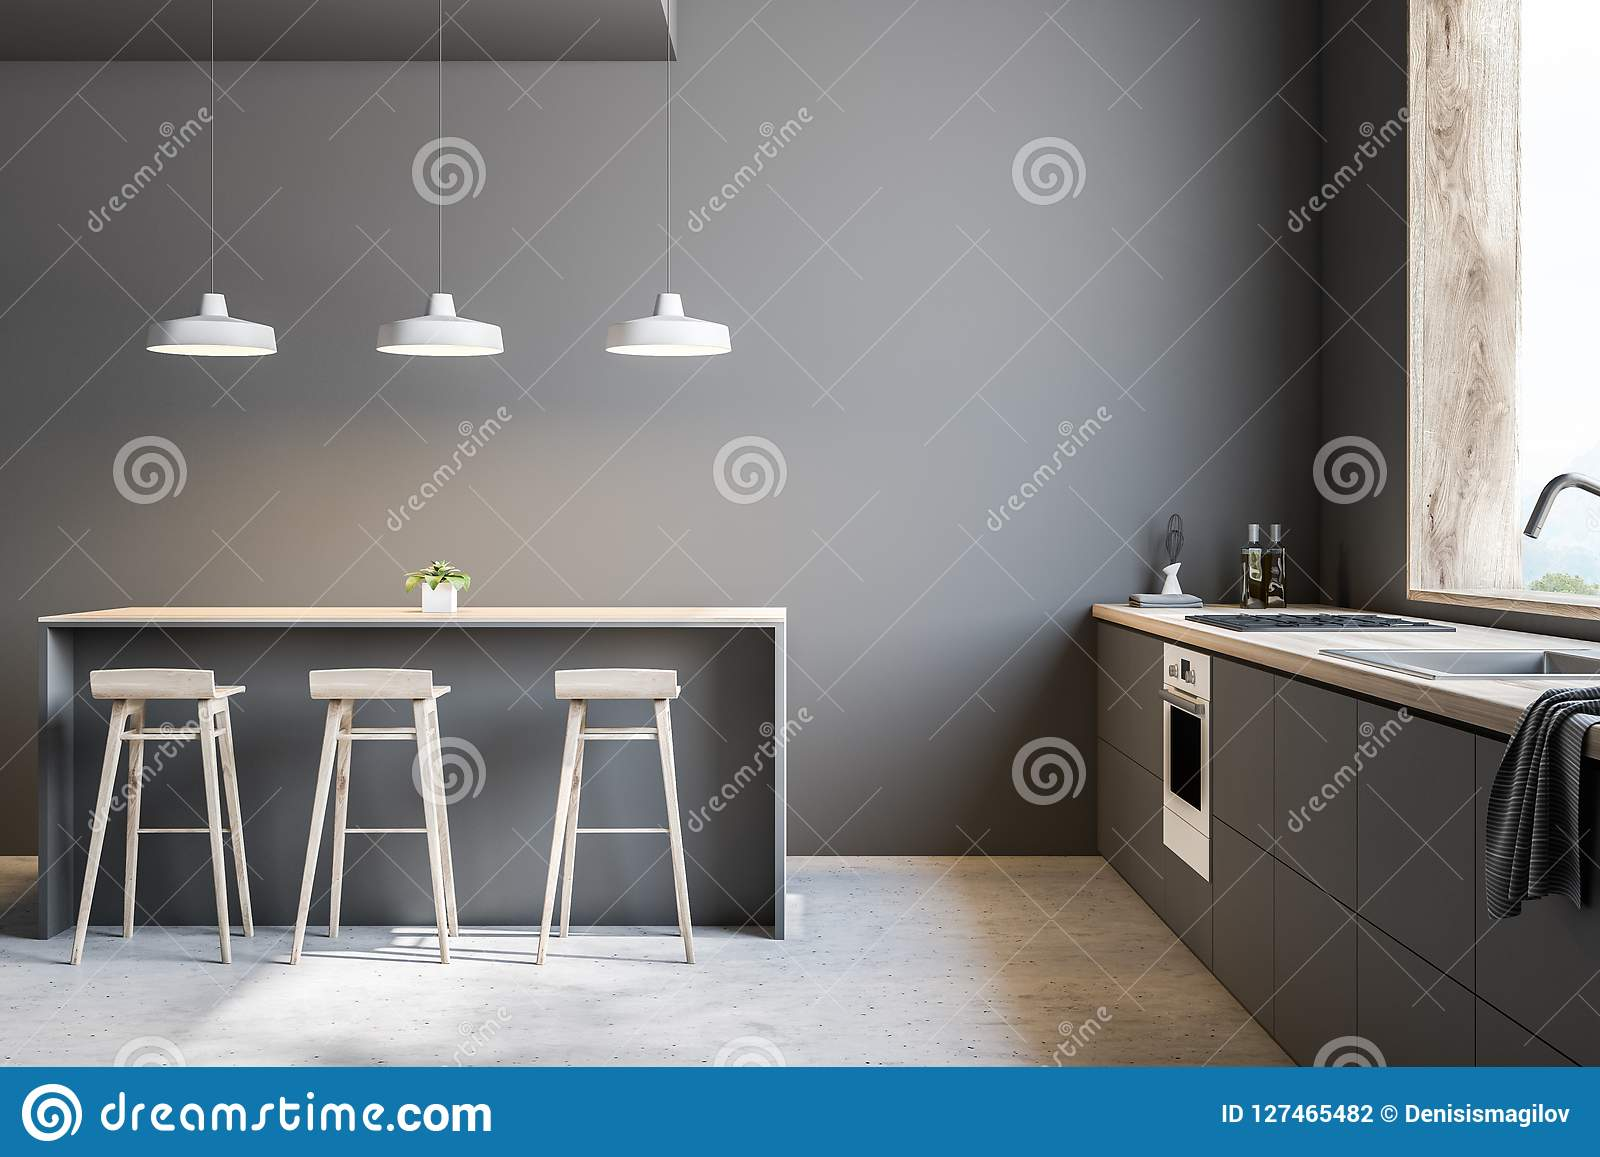 Wondrous Modern Gray Kitchen With Bar And Stools Stock Illustration Pdpeps Interior Chair Design Pdpepsorg